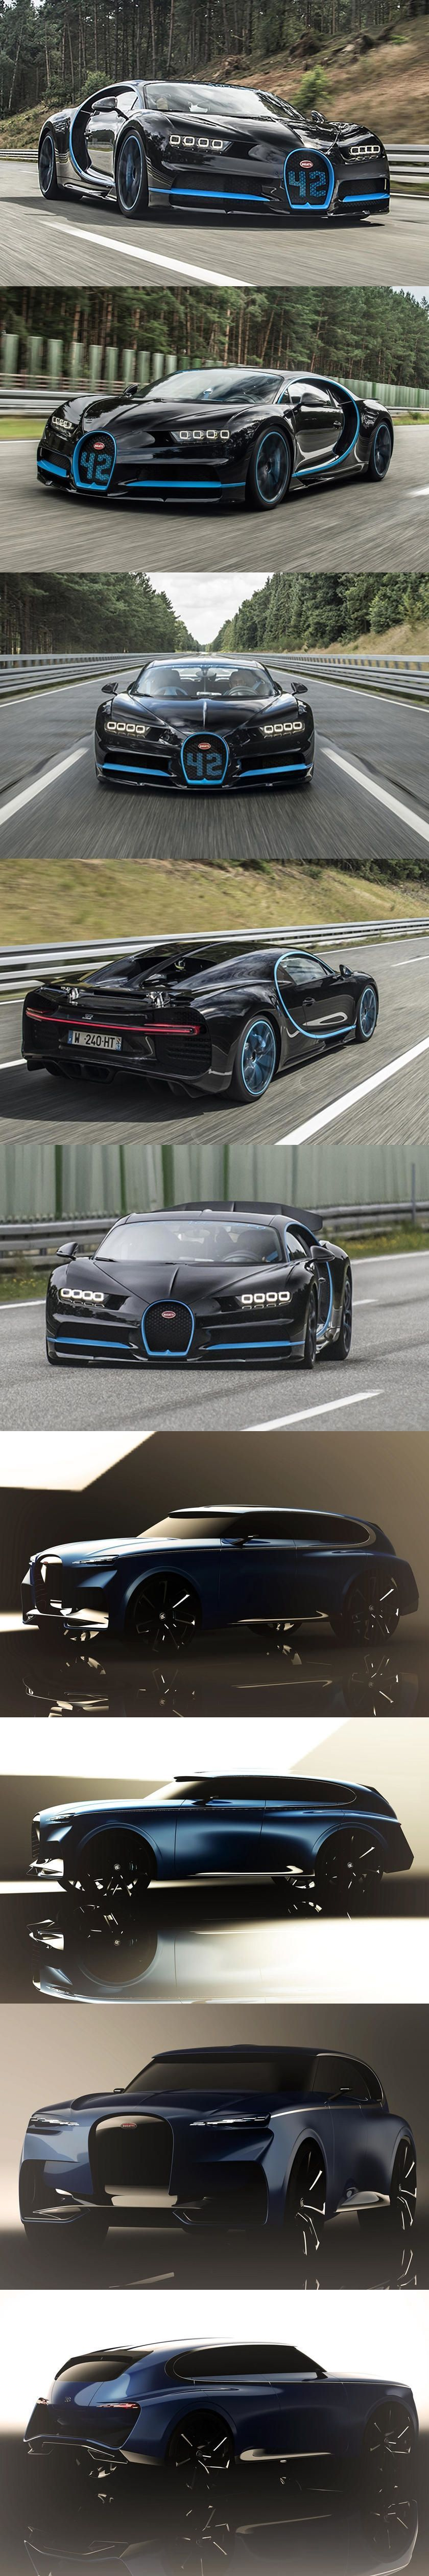 The Bugatti Chiron Could Get Even More Extreme. Will the Chiron ever break the 300-mph barrier? #bugattichiron The Bugatti Chiron Could Get Even More Extreme. Will the Chiron ever break the 300-mph barrier? #bugattichiron The Bugatti Chiron Could Get Even More Extreme. Will the Chiron ever break the 300-mph barrier? #bugattichiron The Bugatti Chiron Could Get Even More Extreme. Will the Chiron ever break the 300-mph barrier? #bugattichiron